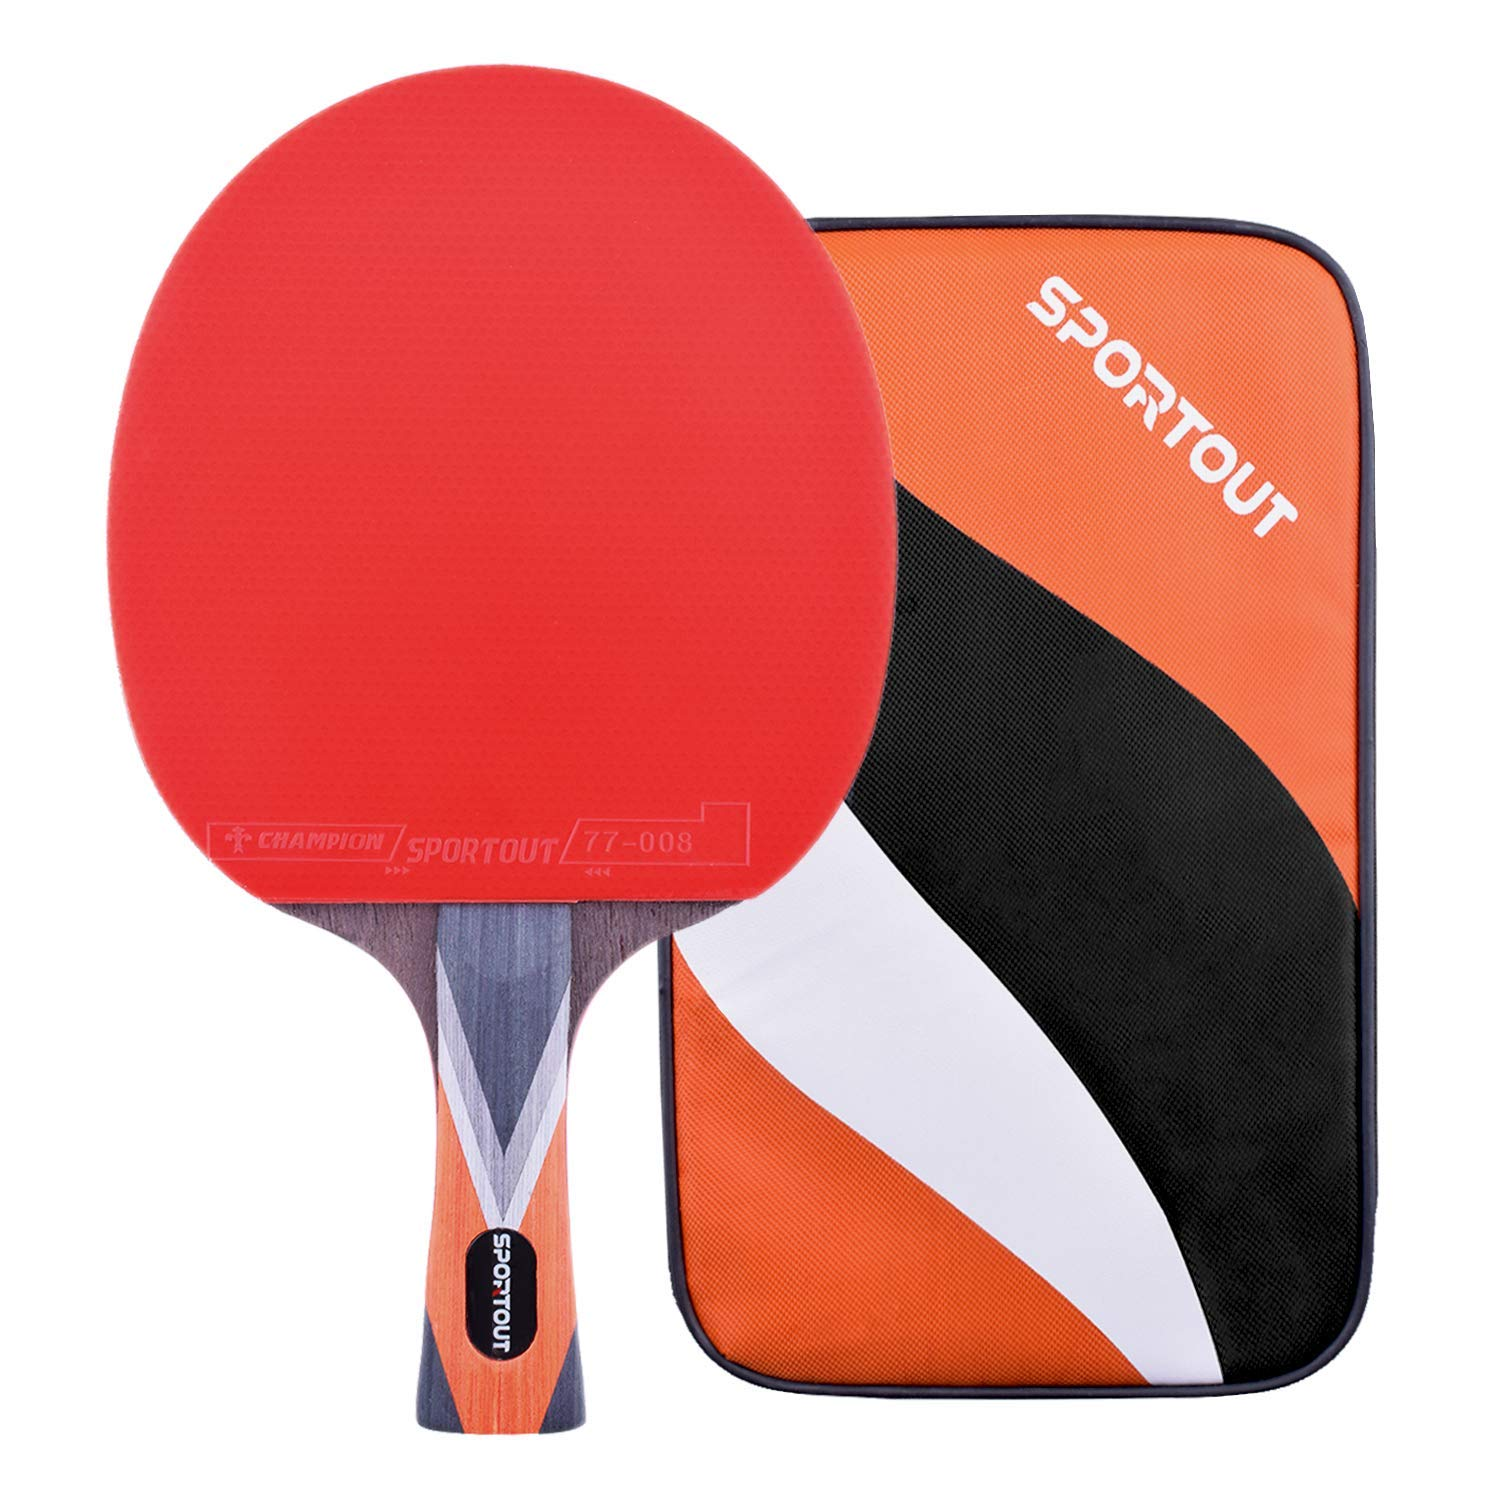 Balls and Portable Case Perfect for Home Indoor or Outdoor Play Sportout 4 Player Ping Pong Paddle Set Table Tennis Paddle Set with Retractable Net